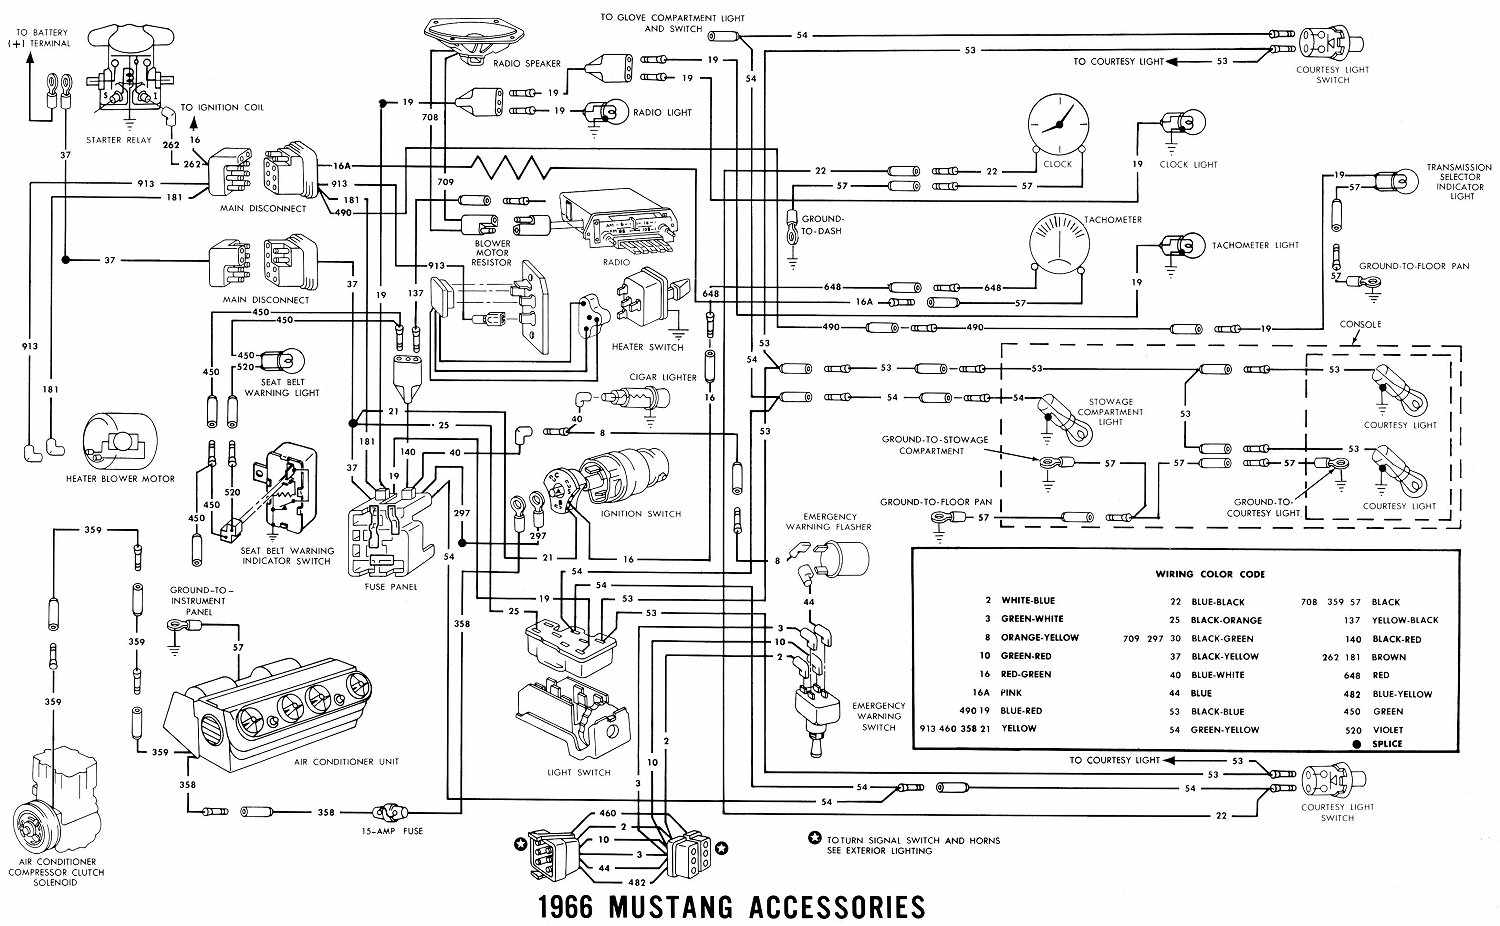 2011 Mustang Wiring Diagram Detailed Schematics Diagram 2012 Mustang Wiring  Diagram Trunk 2011 Mustang Wiring Diagram